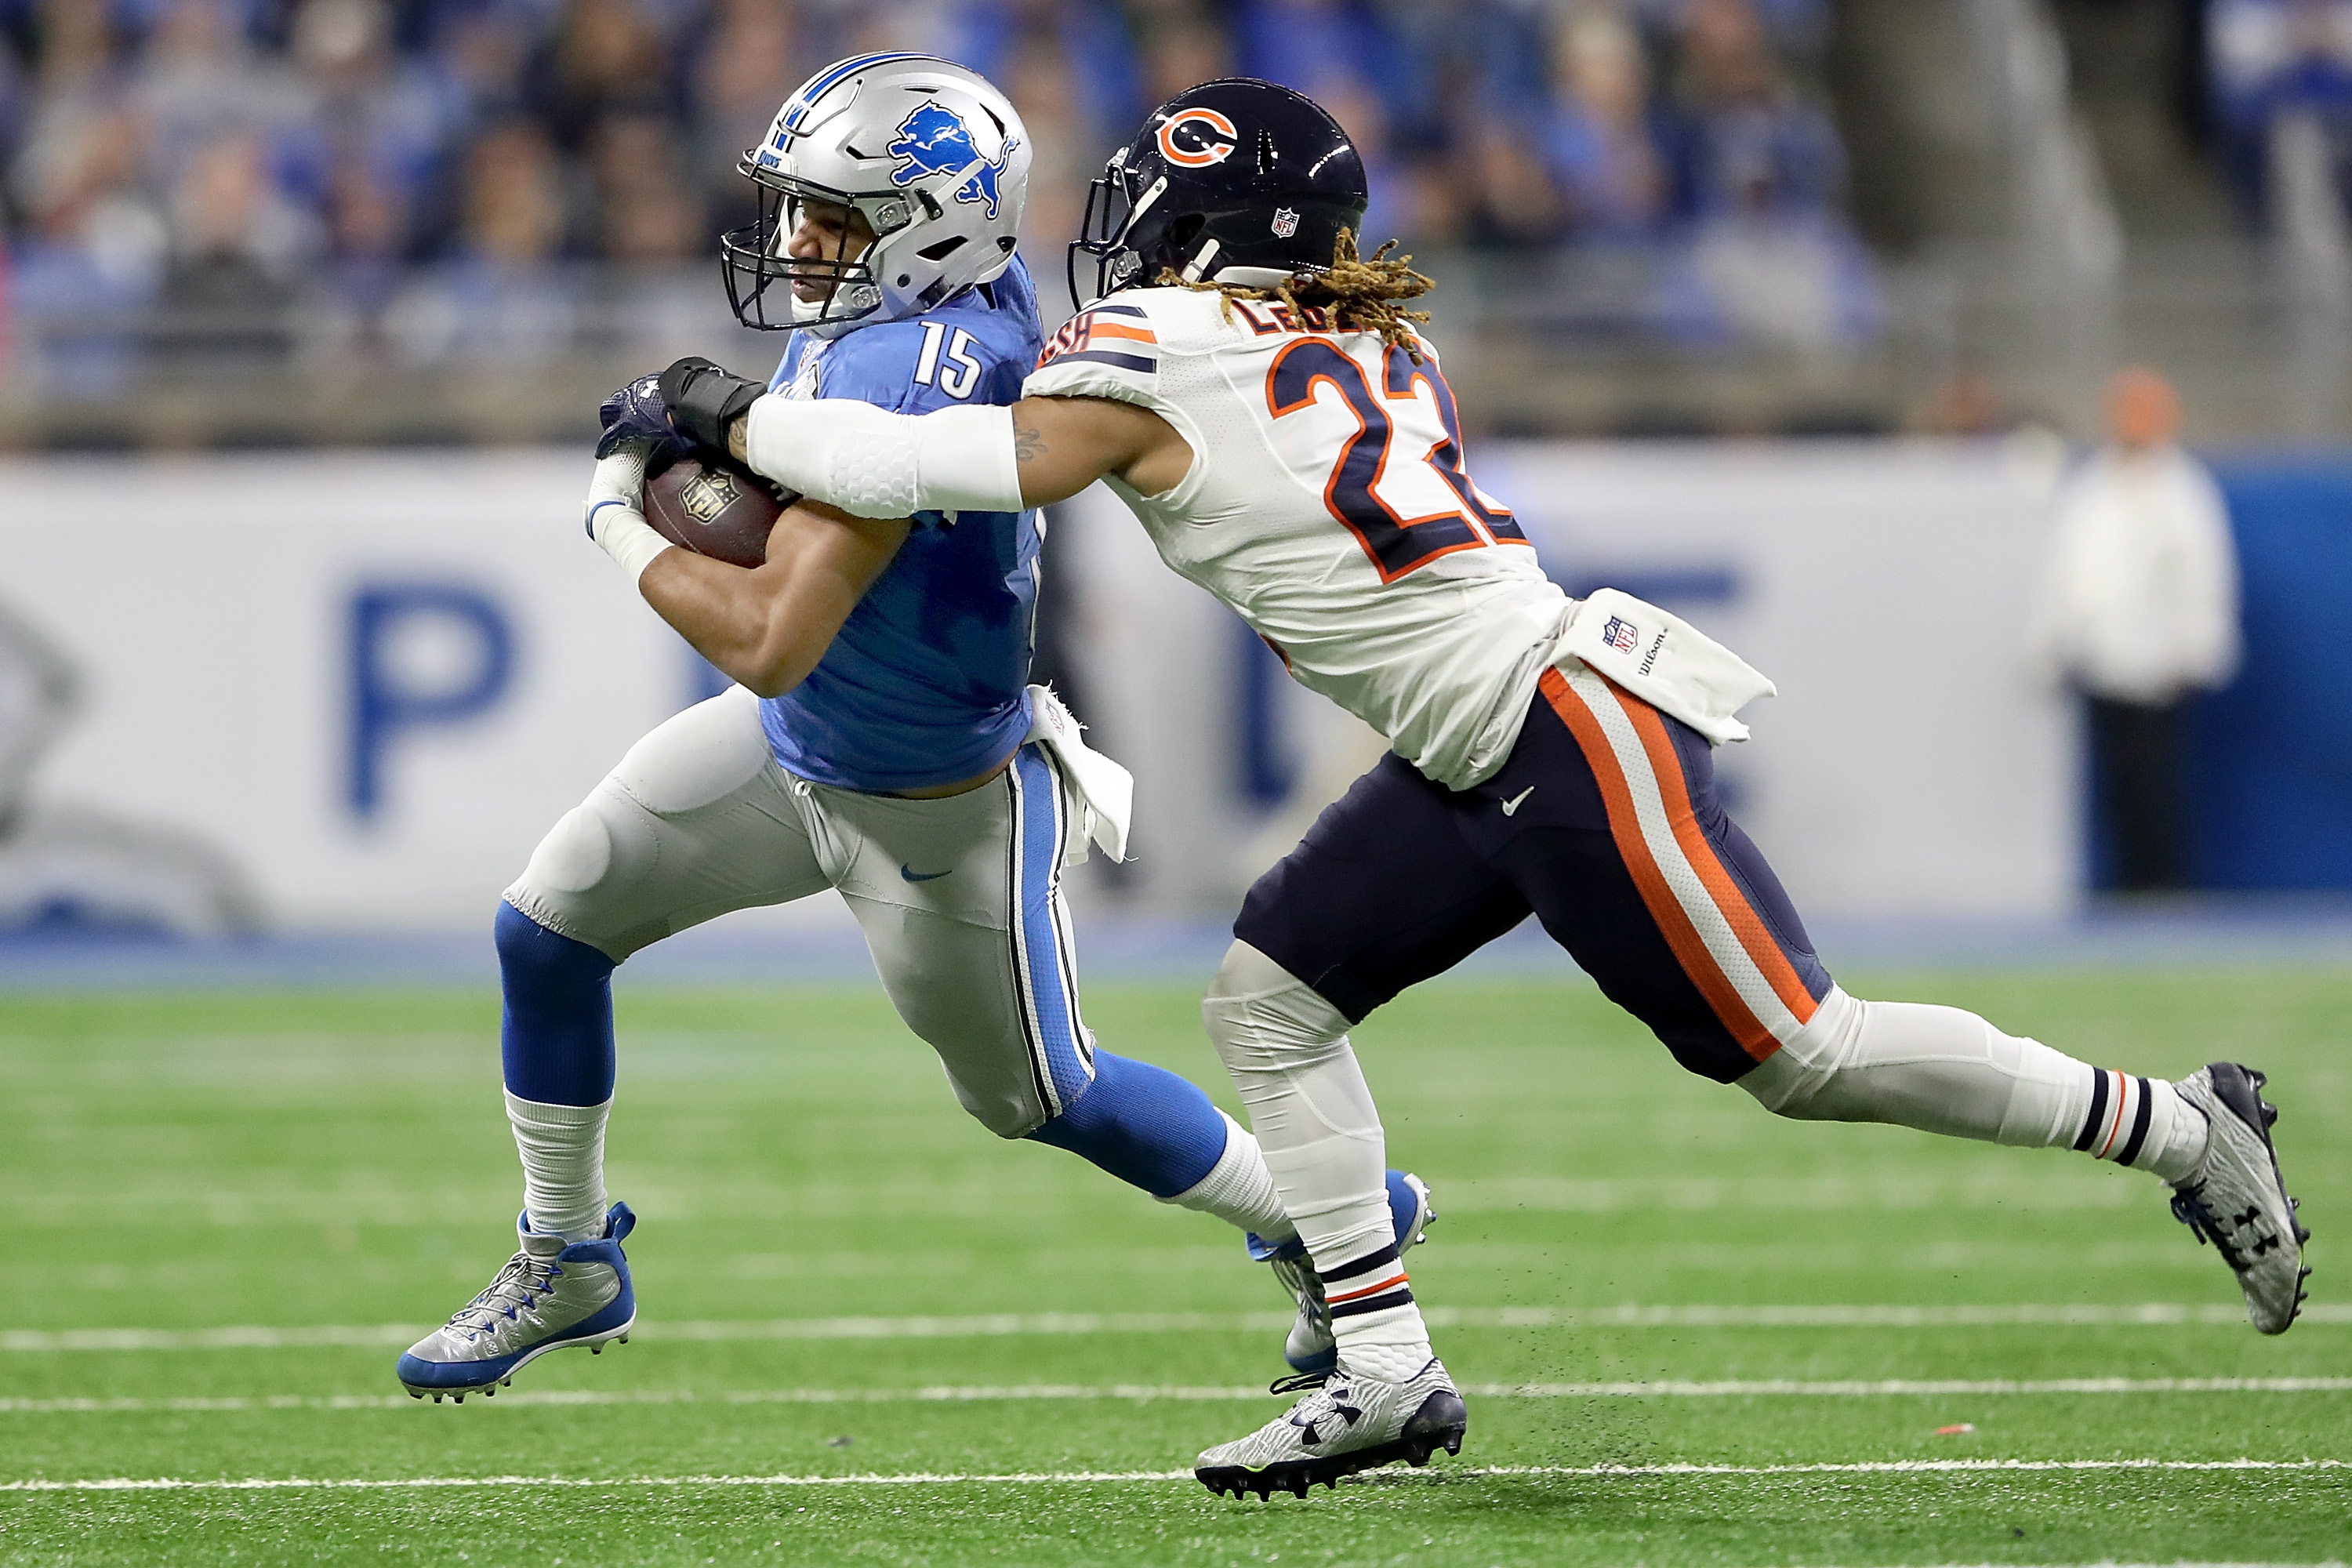 629158188-chicago-bears-v-detroit-lions.jpg